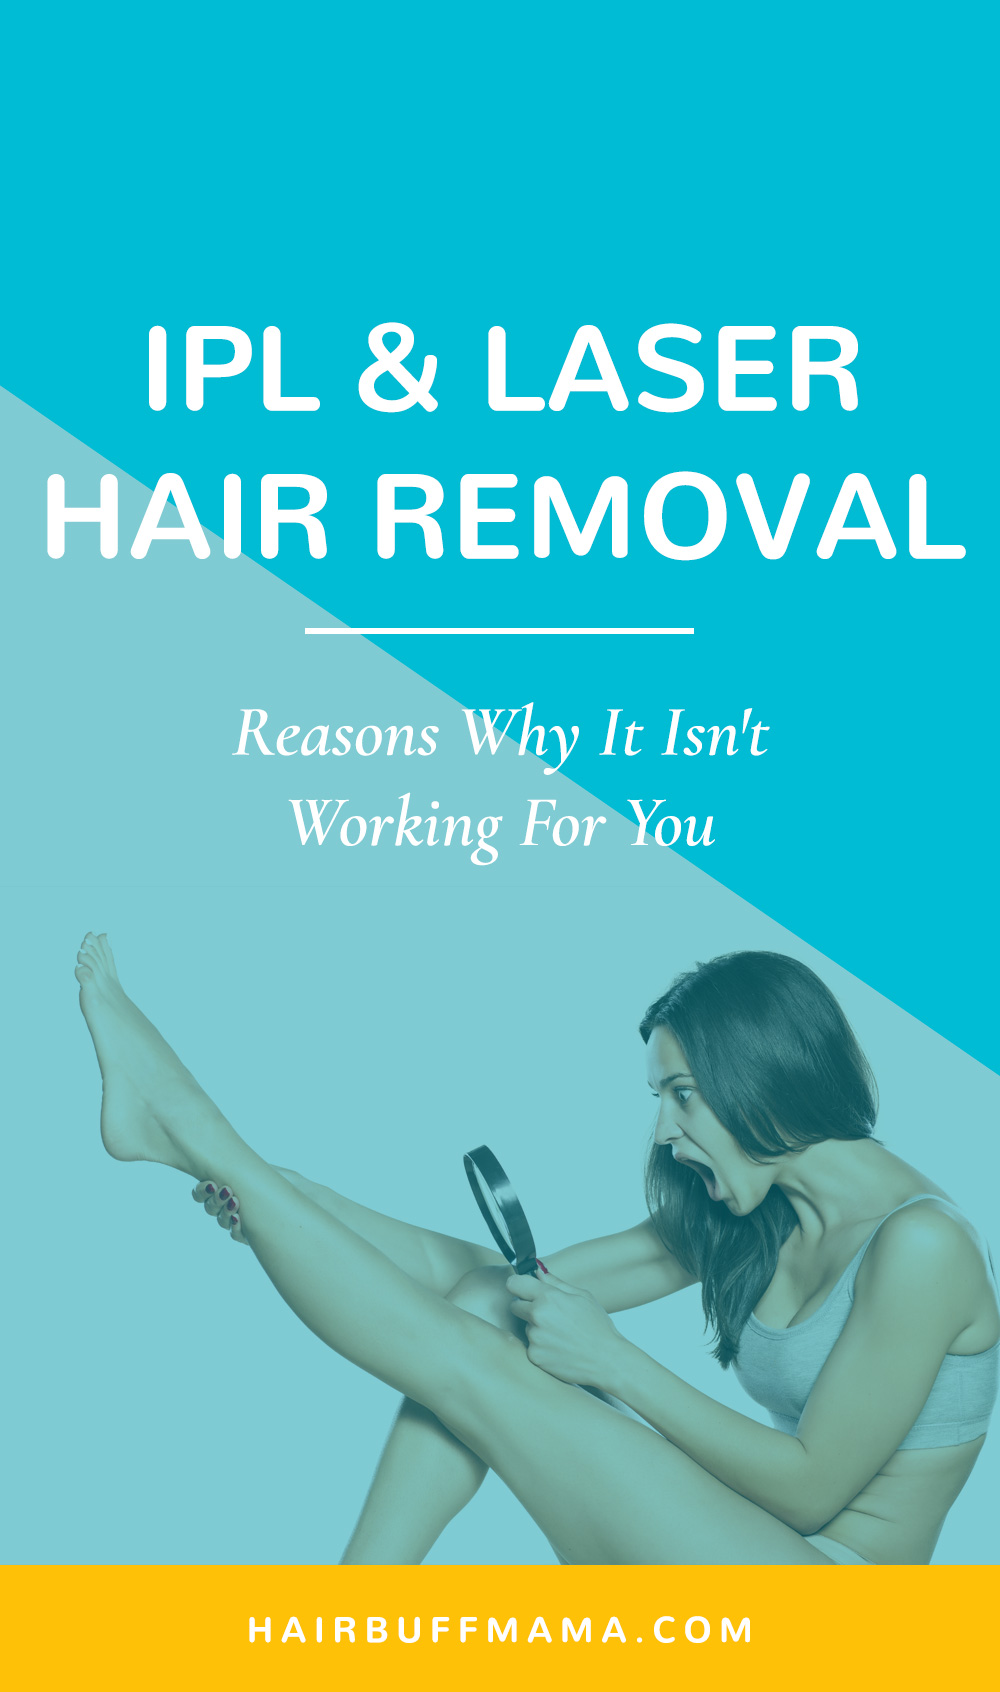 11 tips for home use ipl hair removal that didnt work hair buff mama home use ipl hair removal that didnt work solutioingenieria Images